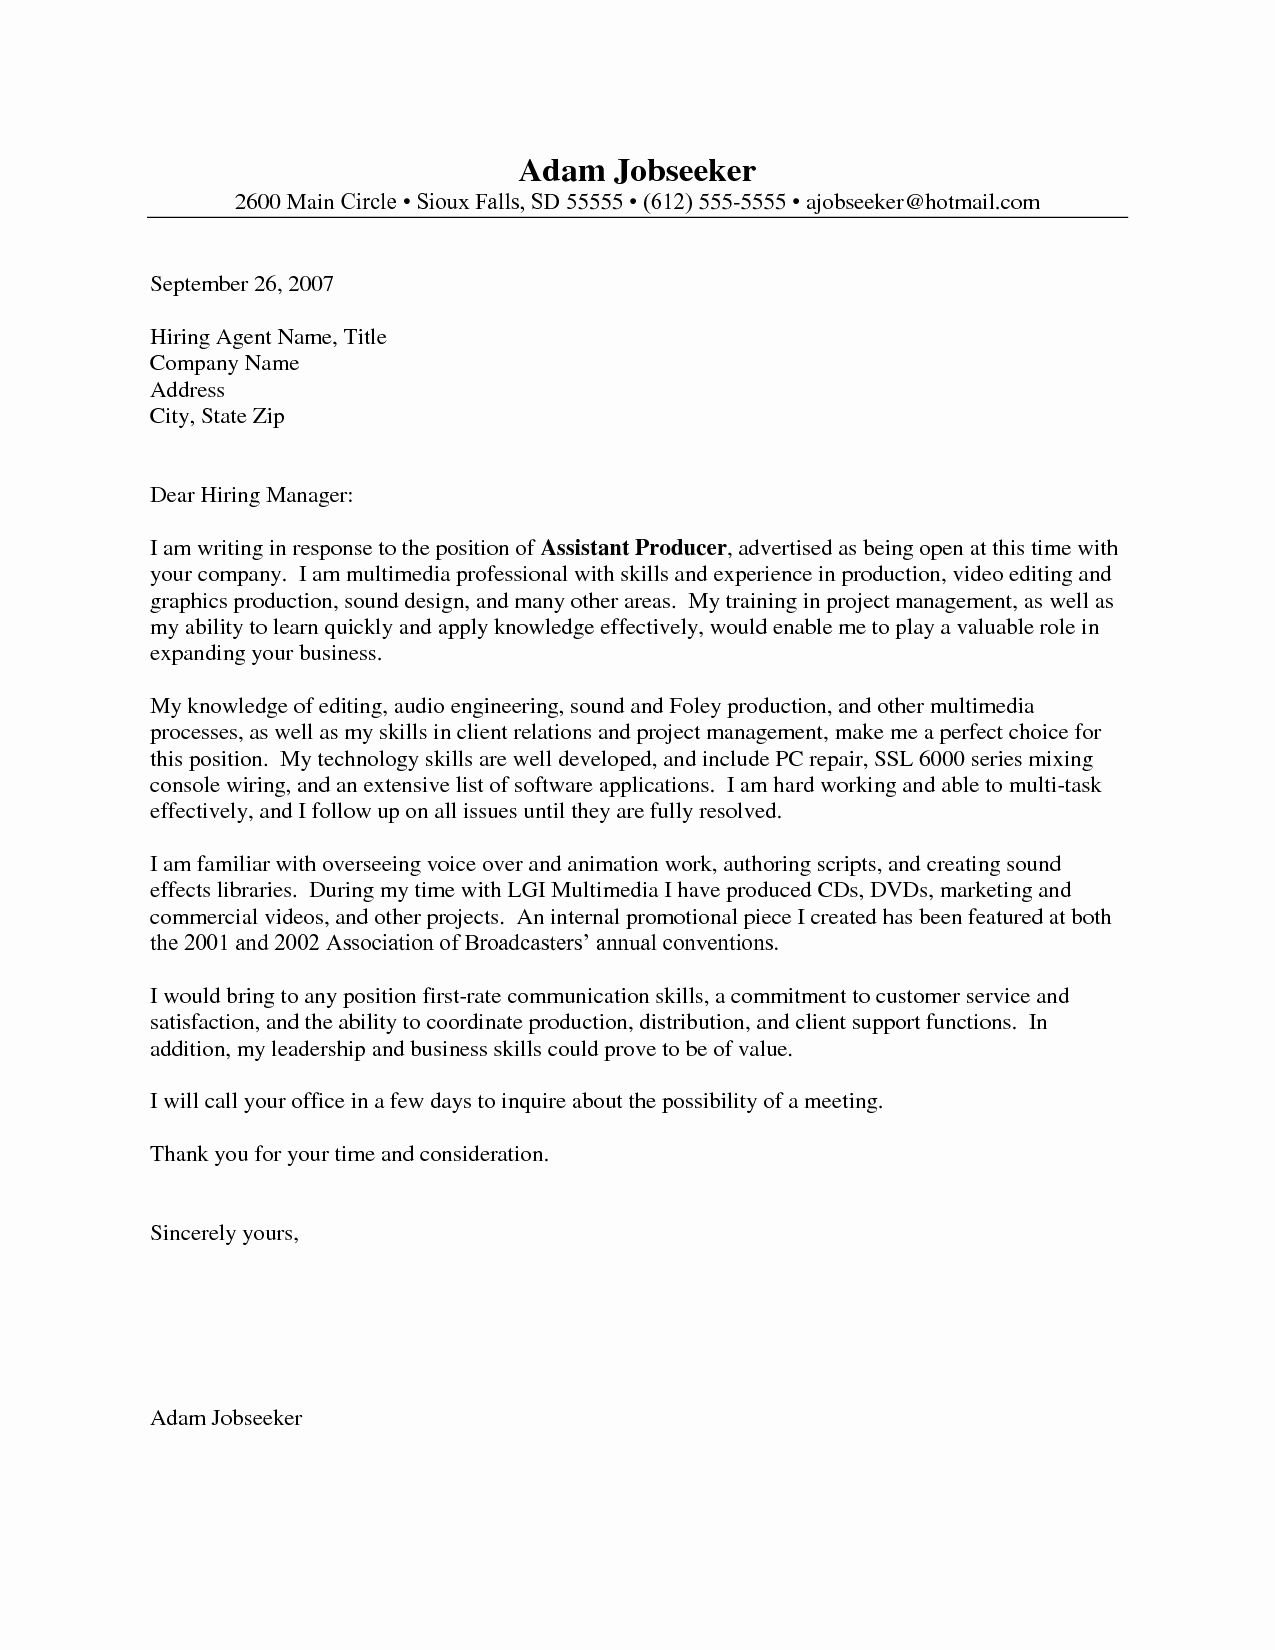 Entry Level Job Cover Letter Beautiful Entry Level Cover Letter Example Job Pinterest